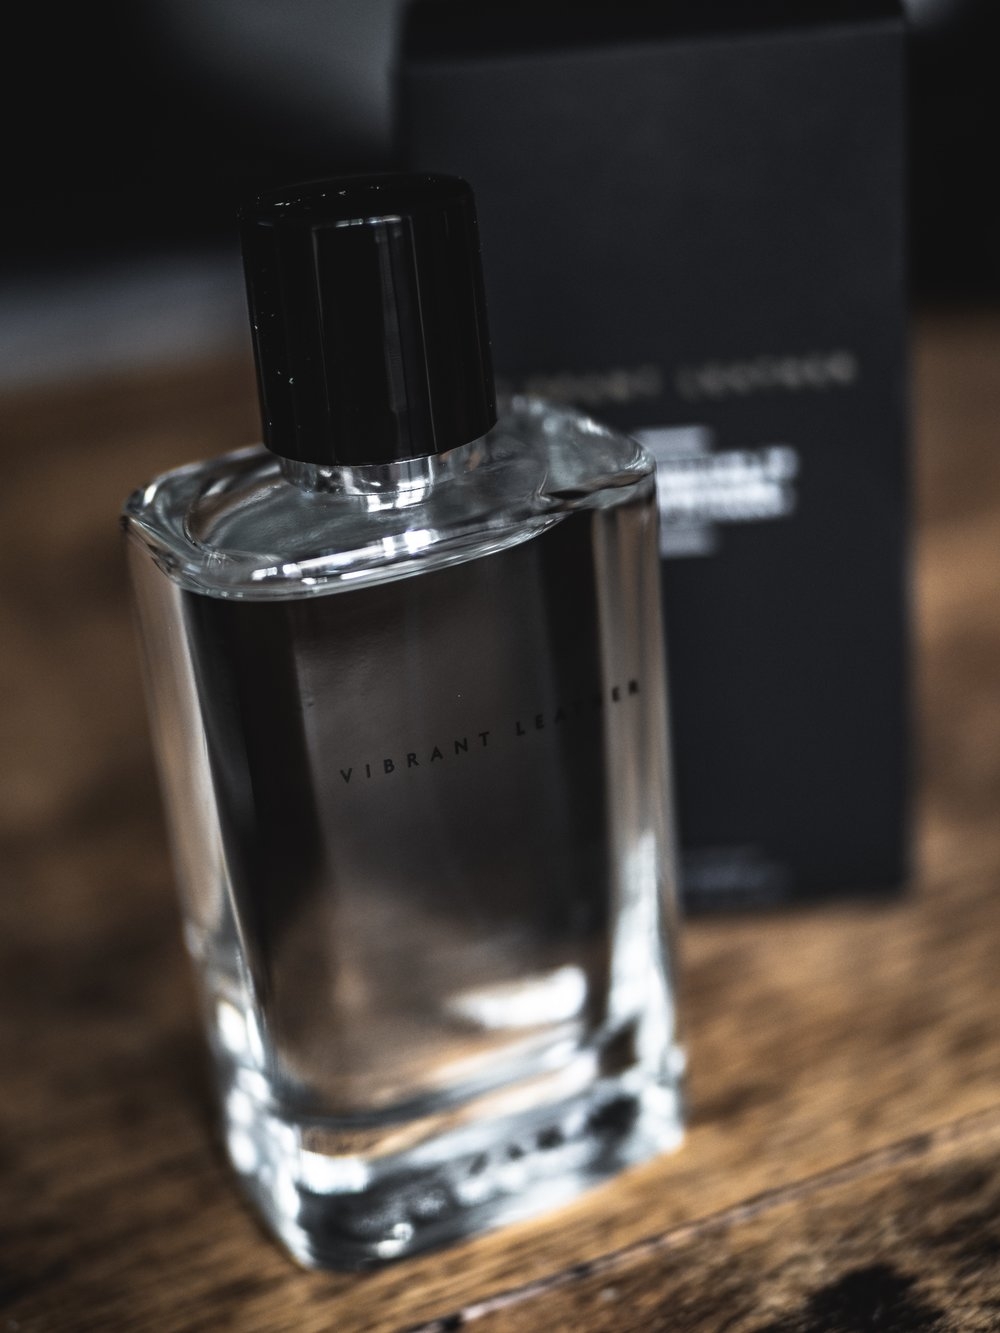 Zara Vibrant Leather Fragrance Review Jerome Epinette Cheap High Street